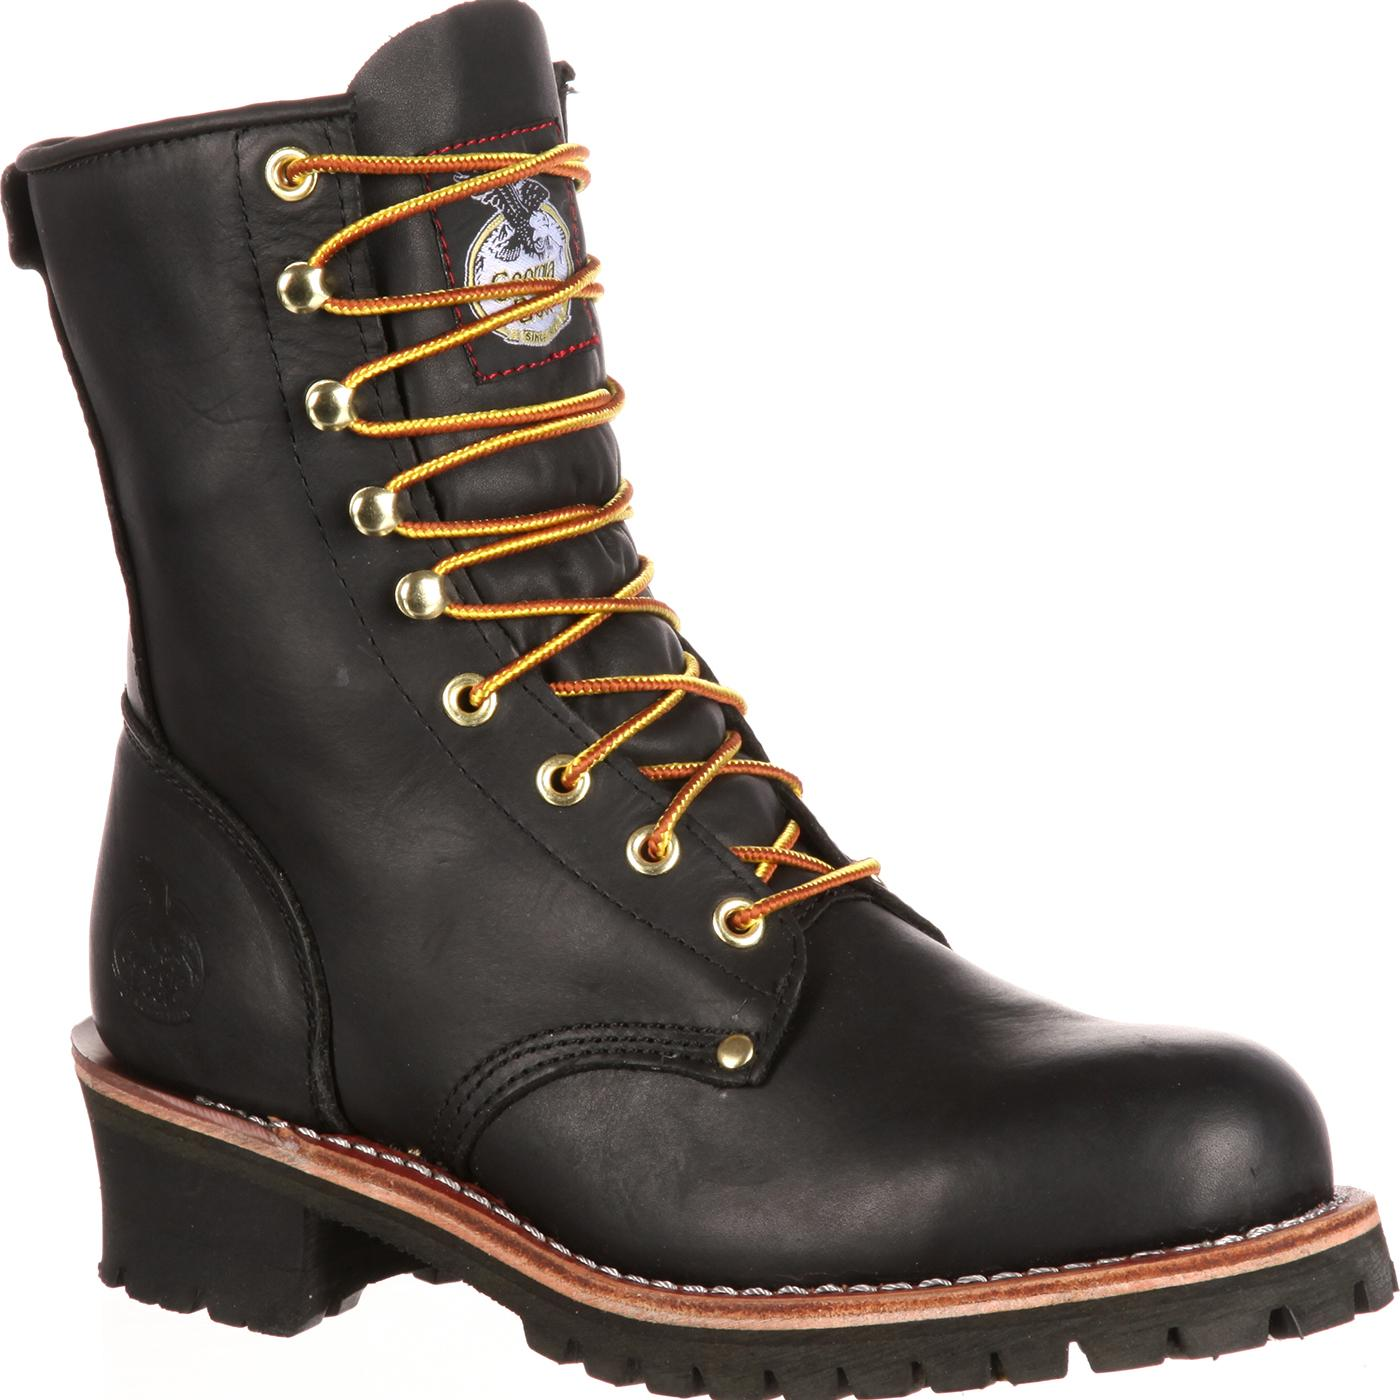 Men S 8 Quot Black Logger Work Boots Georgia Boot Style G8120